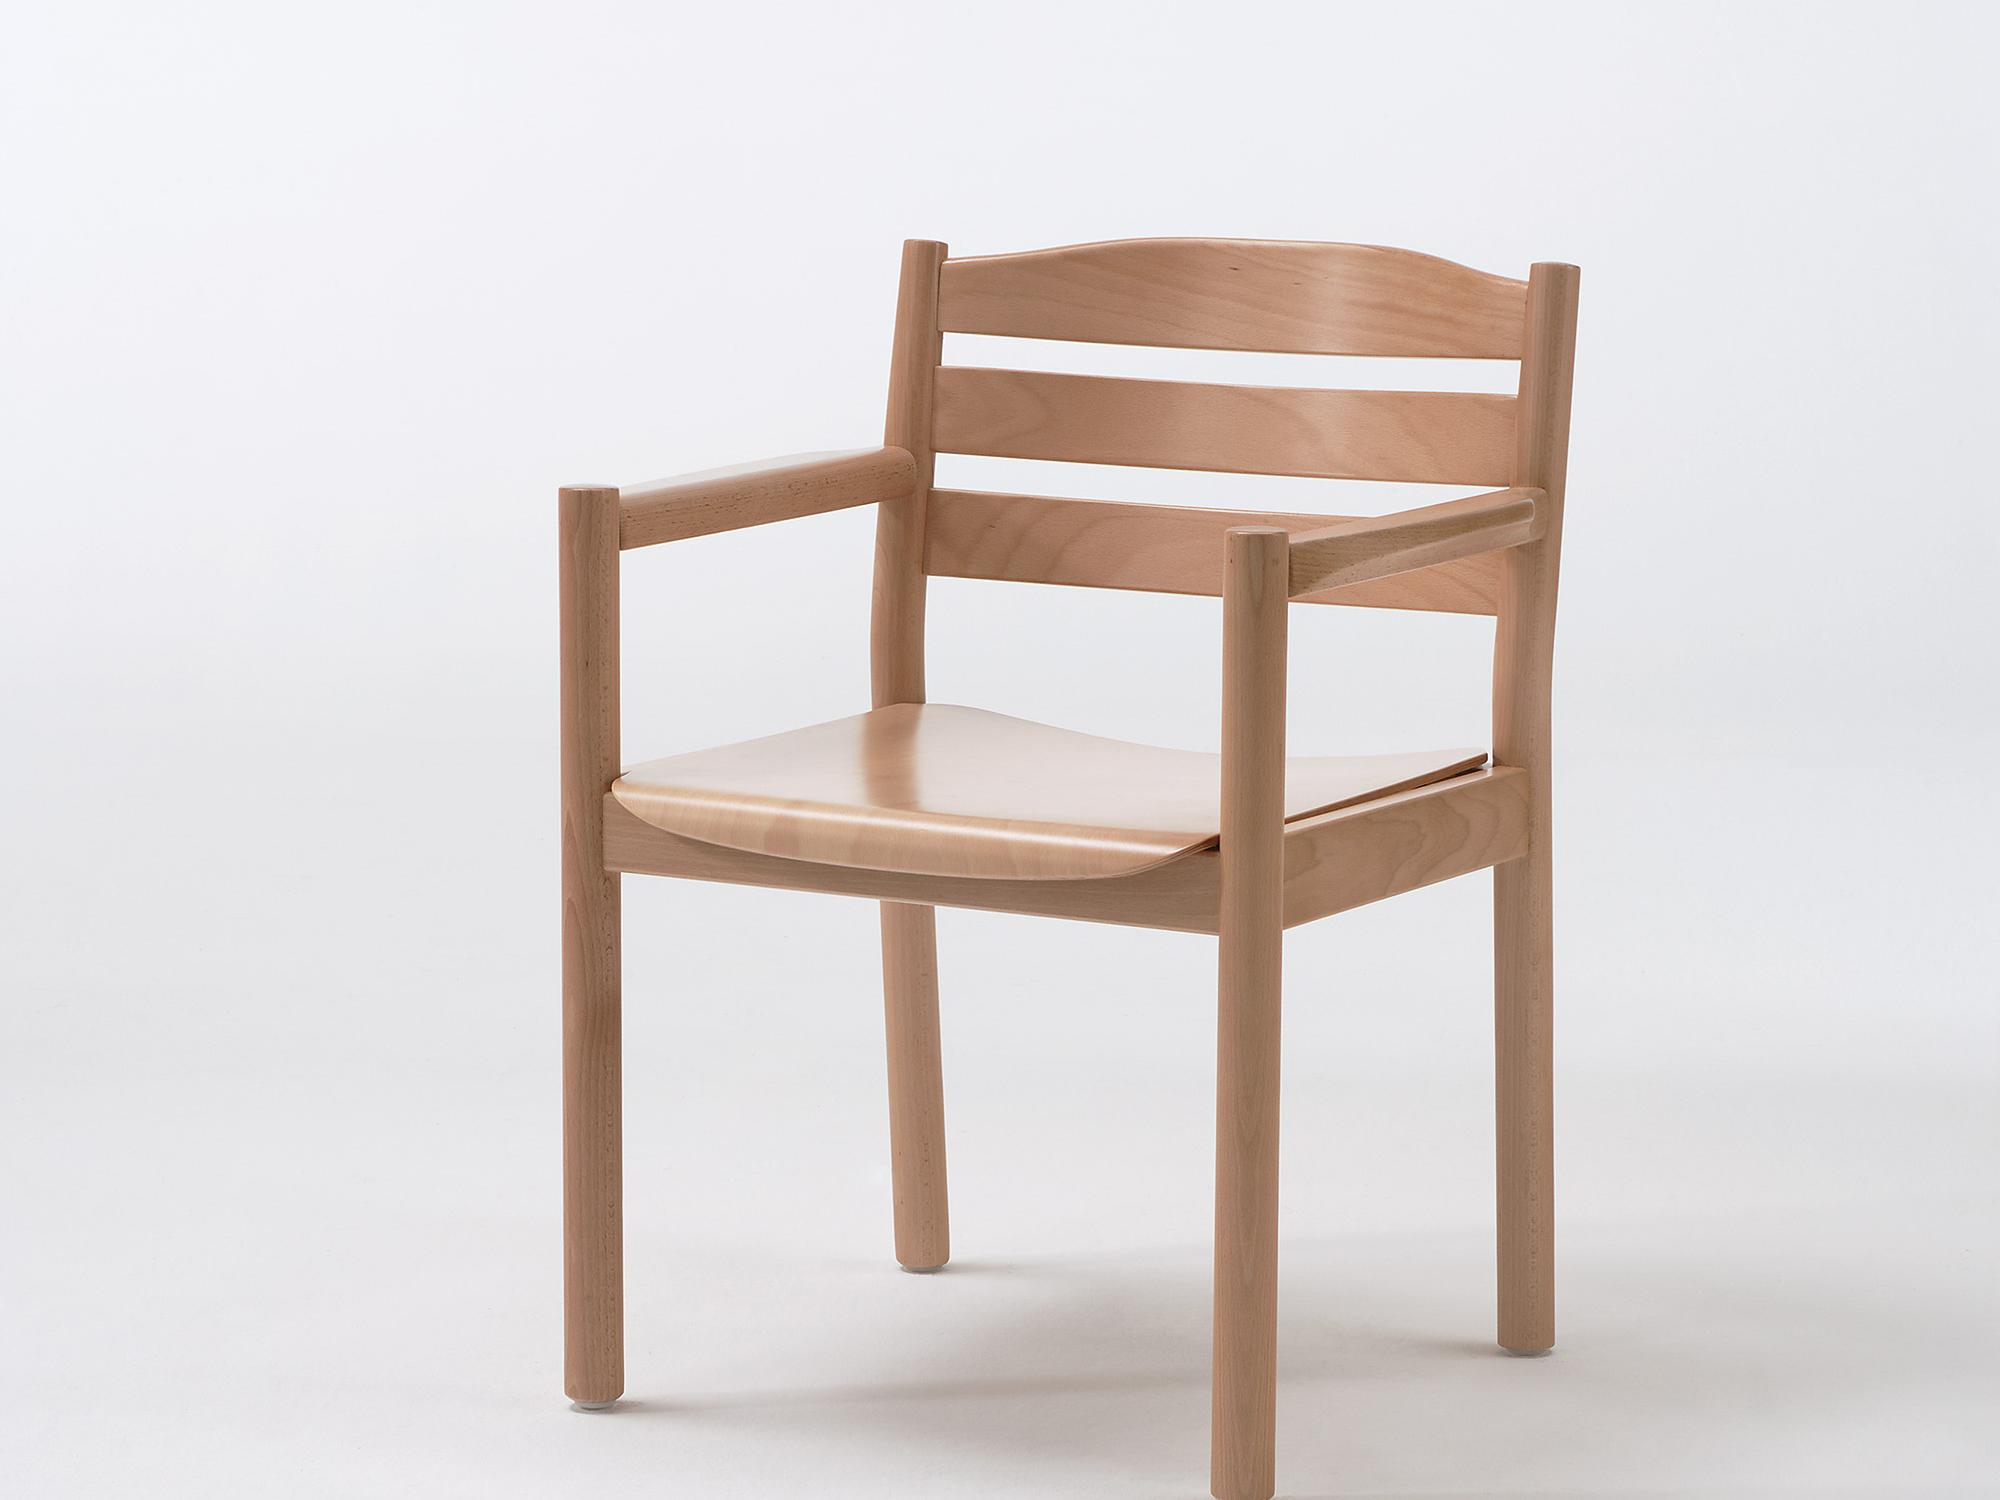 The Primo wooden armchair model